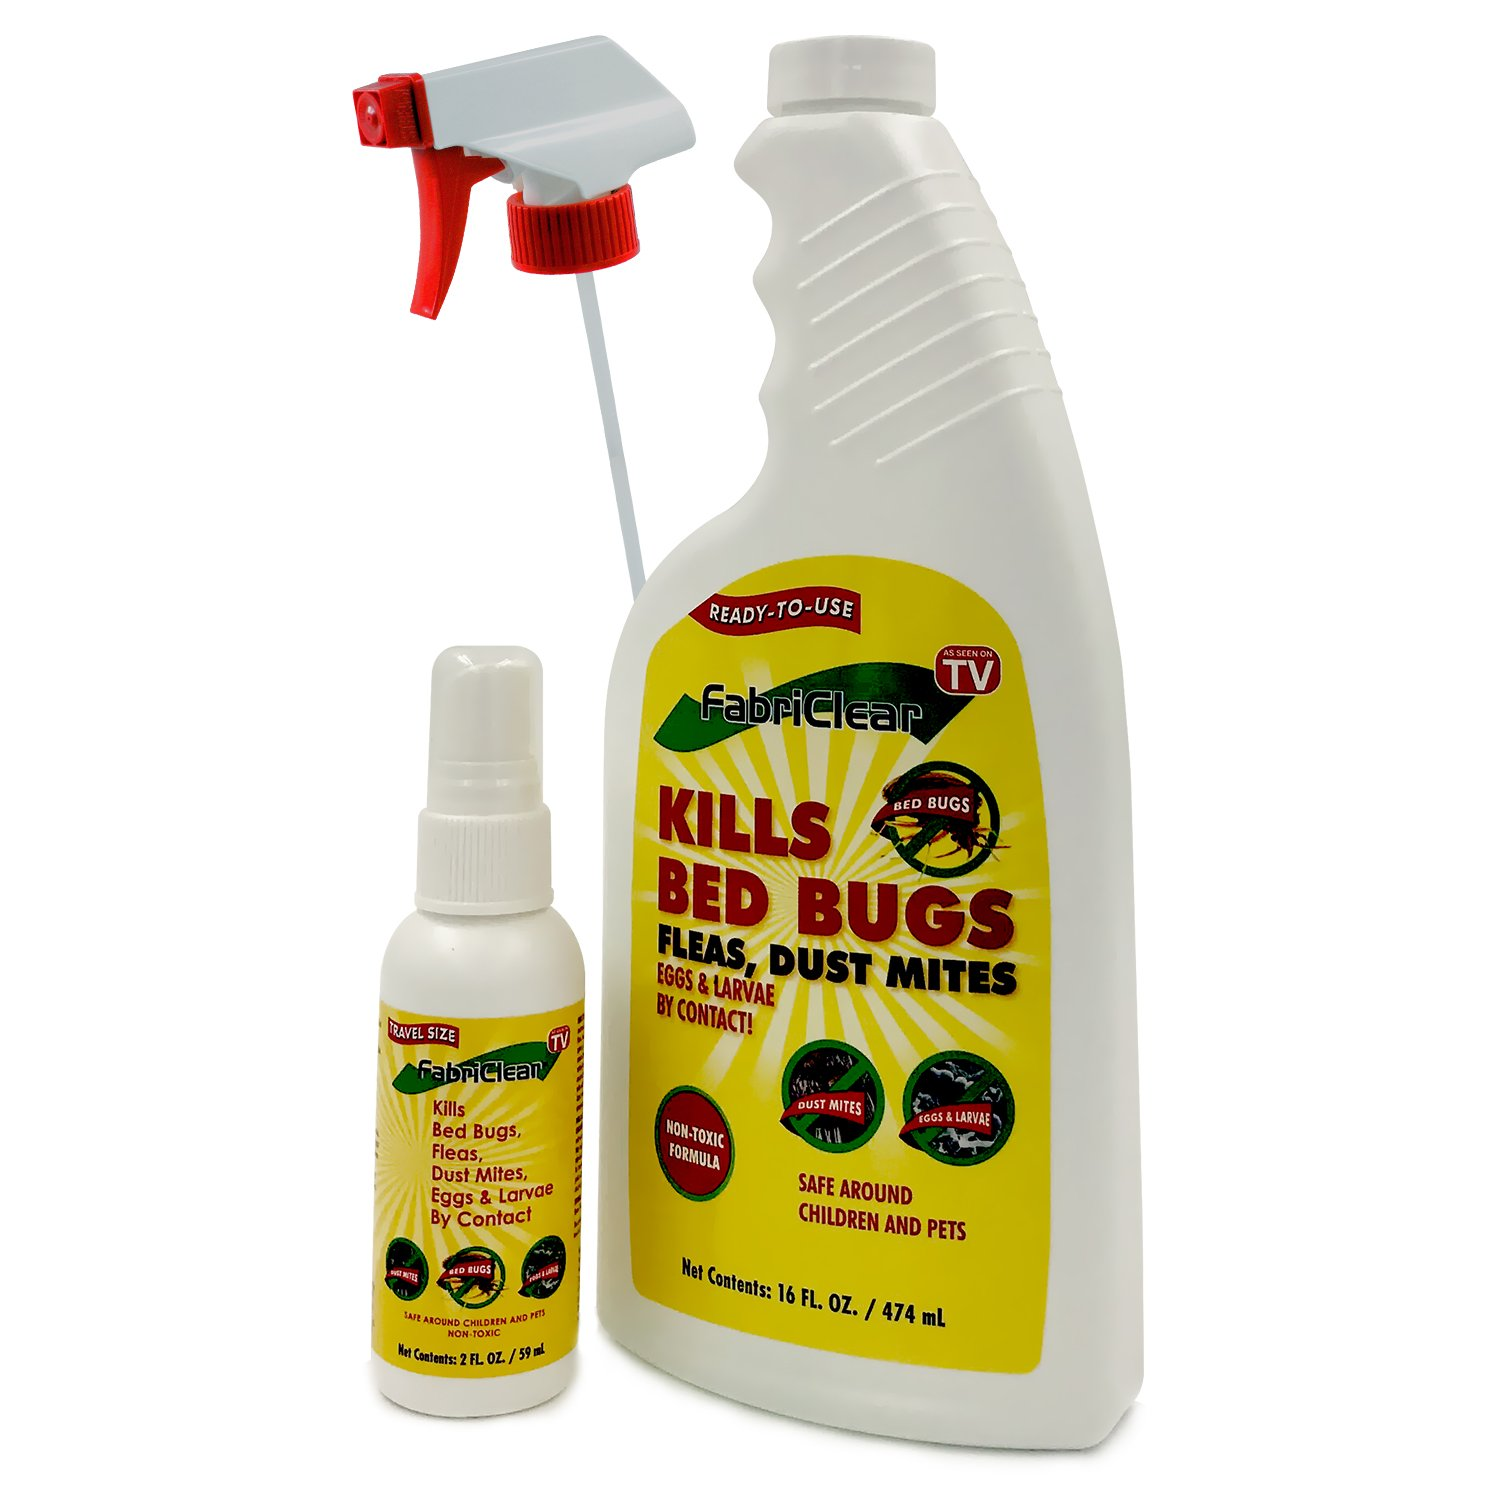 FabriClear Bed Bug, Dust Mite and Flea Killer Spray - NON-TOXIC - 16oz plus 2oz Travel Size